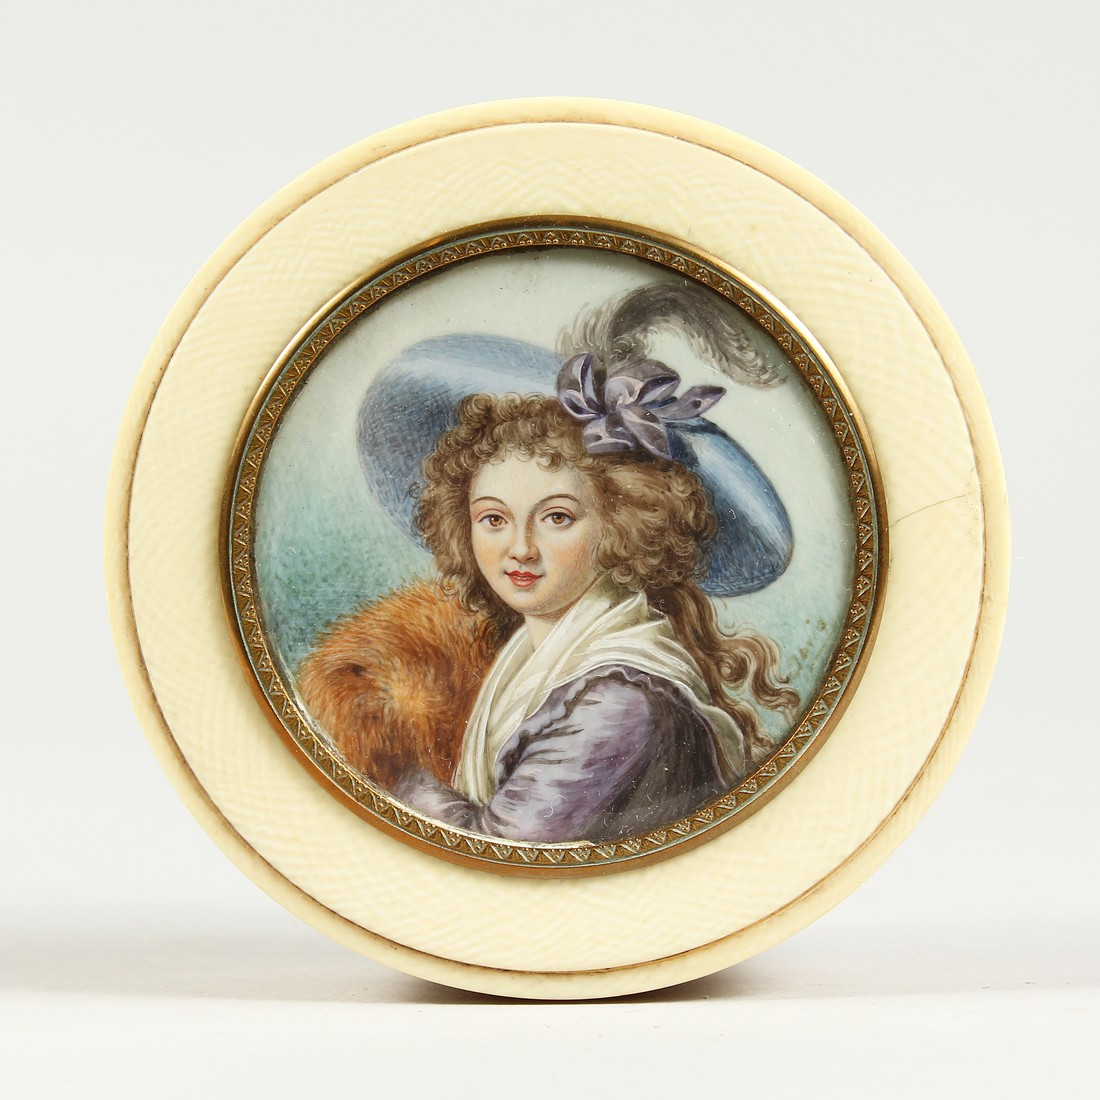 A GEORGIAN IVORY CIRCULAR BOX, the top painted with a portrait of a young lady in a plumed hat. 3ins